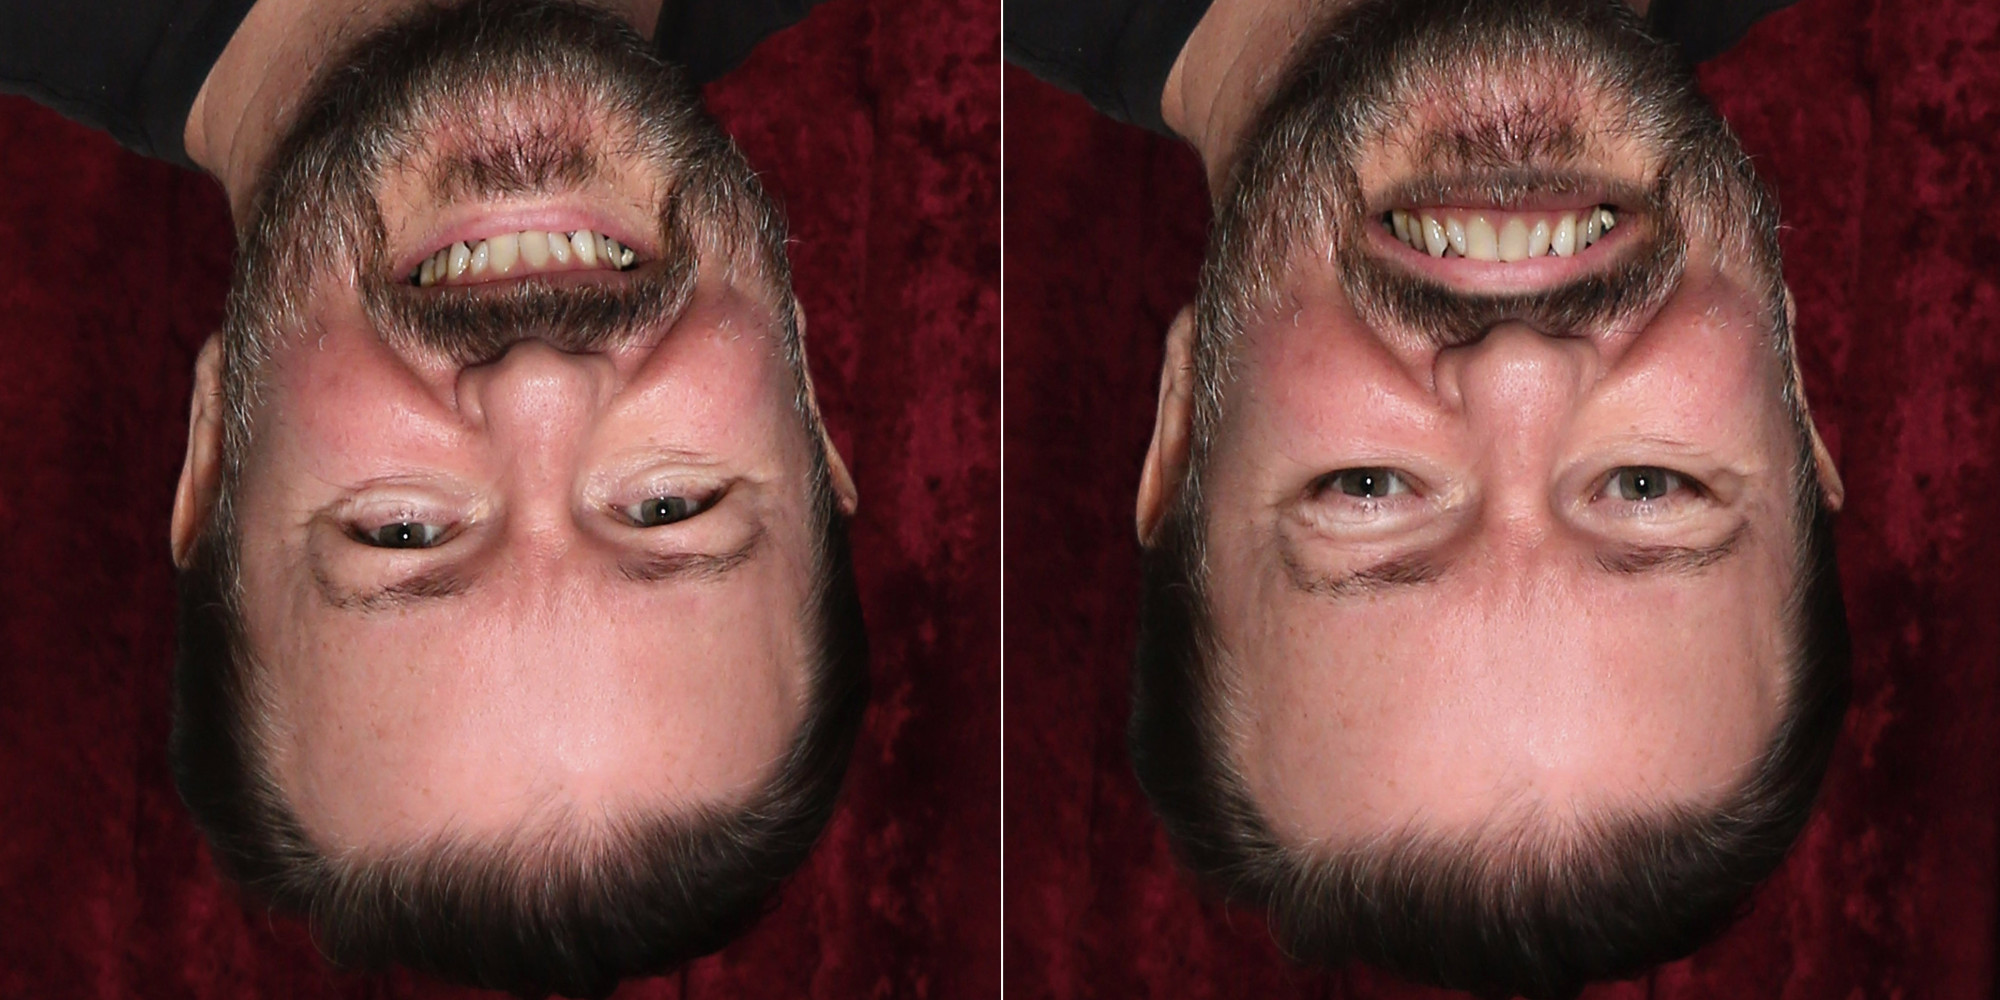 optical illusions face mind inversion blow gervais ricky huffpost